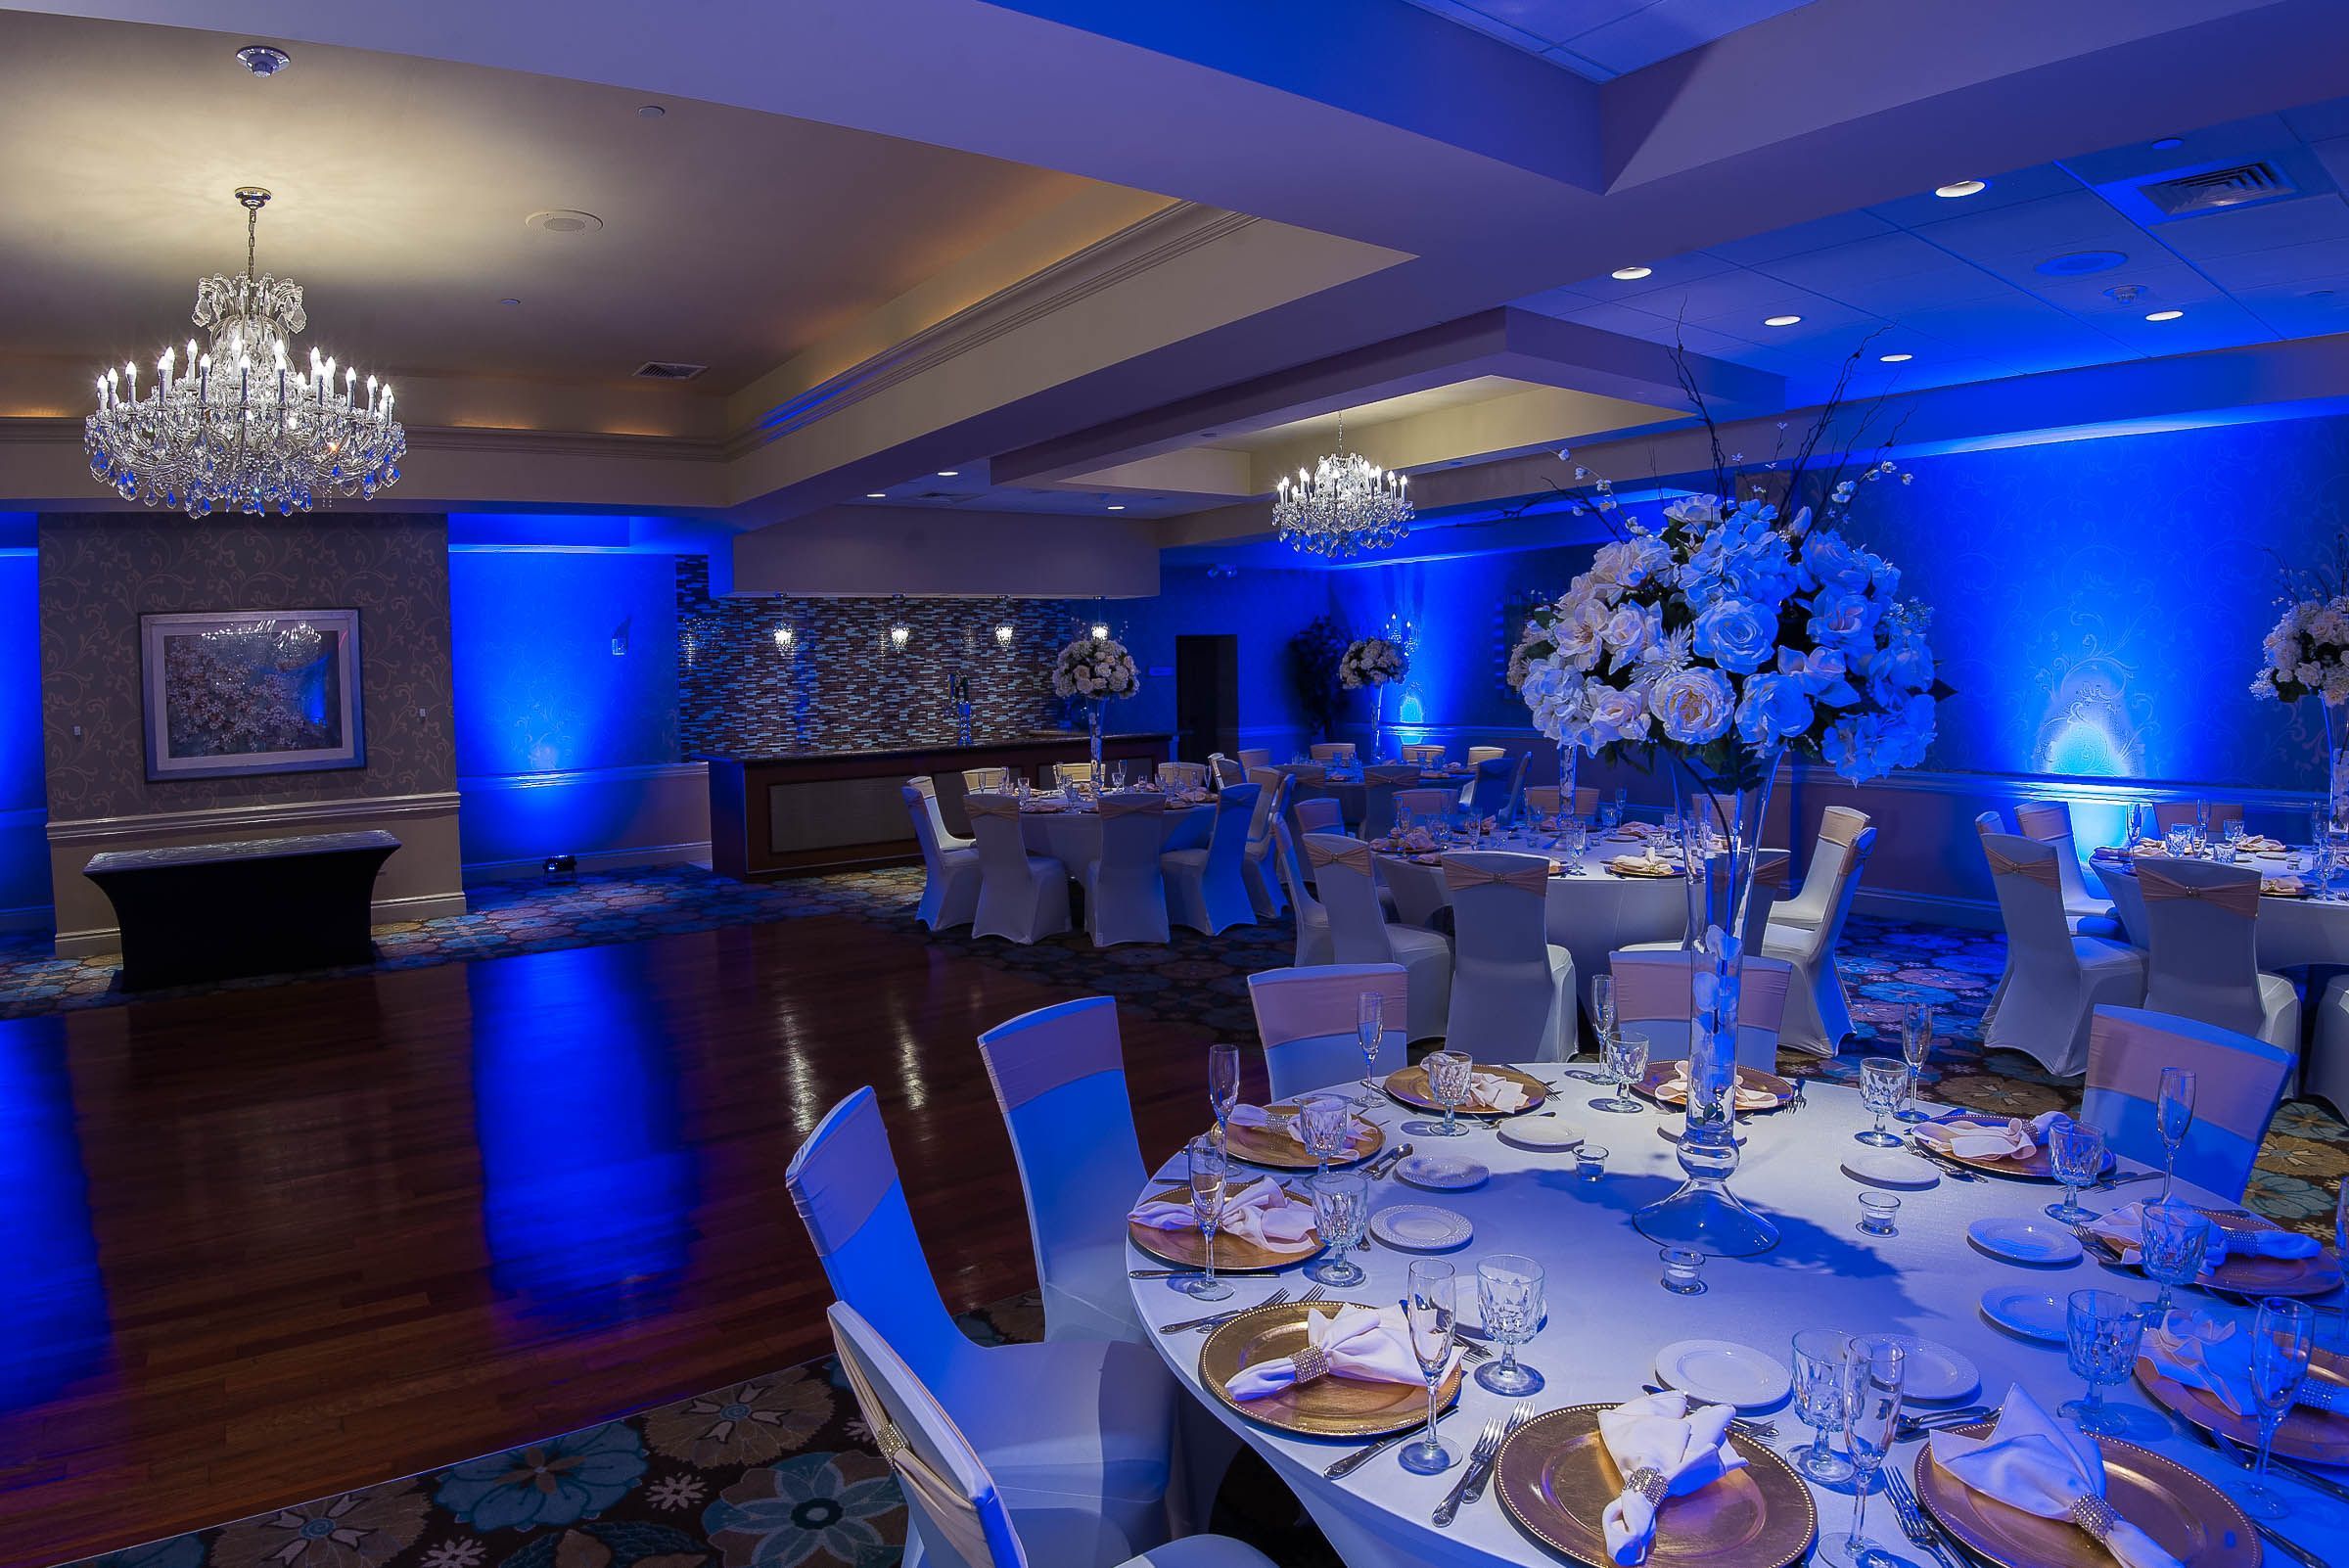 Emerald Ballroom - Blue Wall Wash Lighting | Wall wash lighting, Cove  lighting, Ballroom